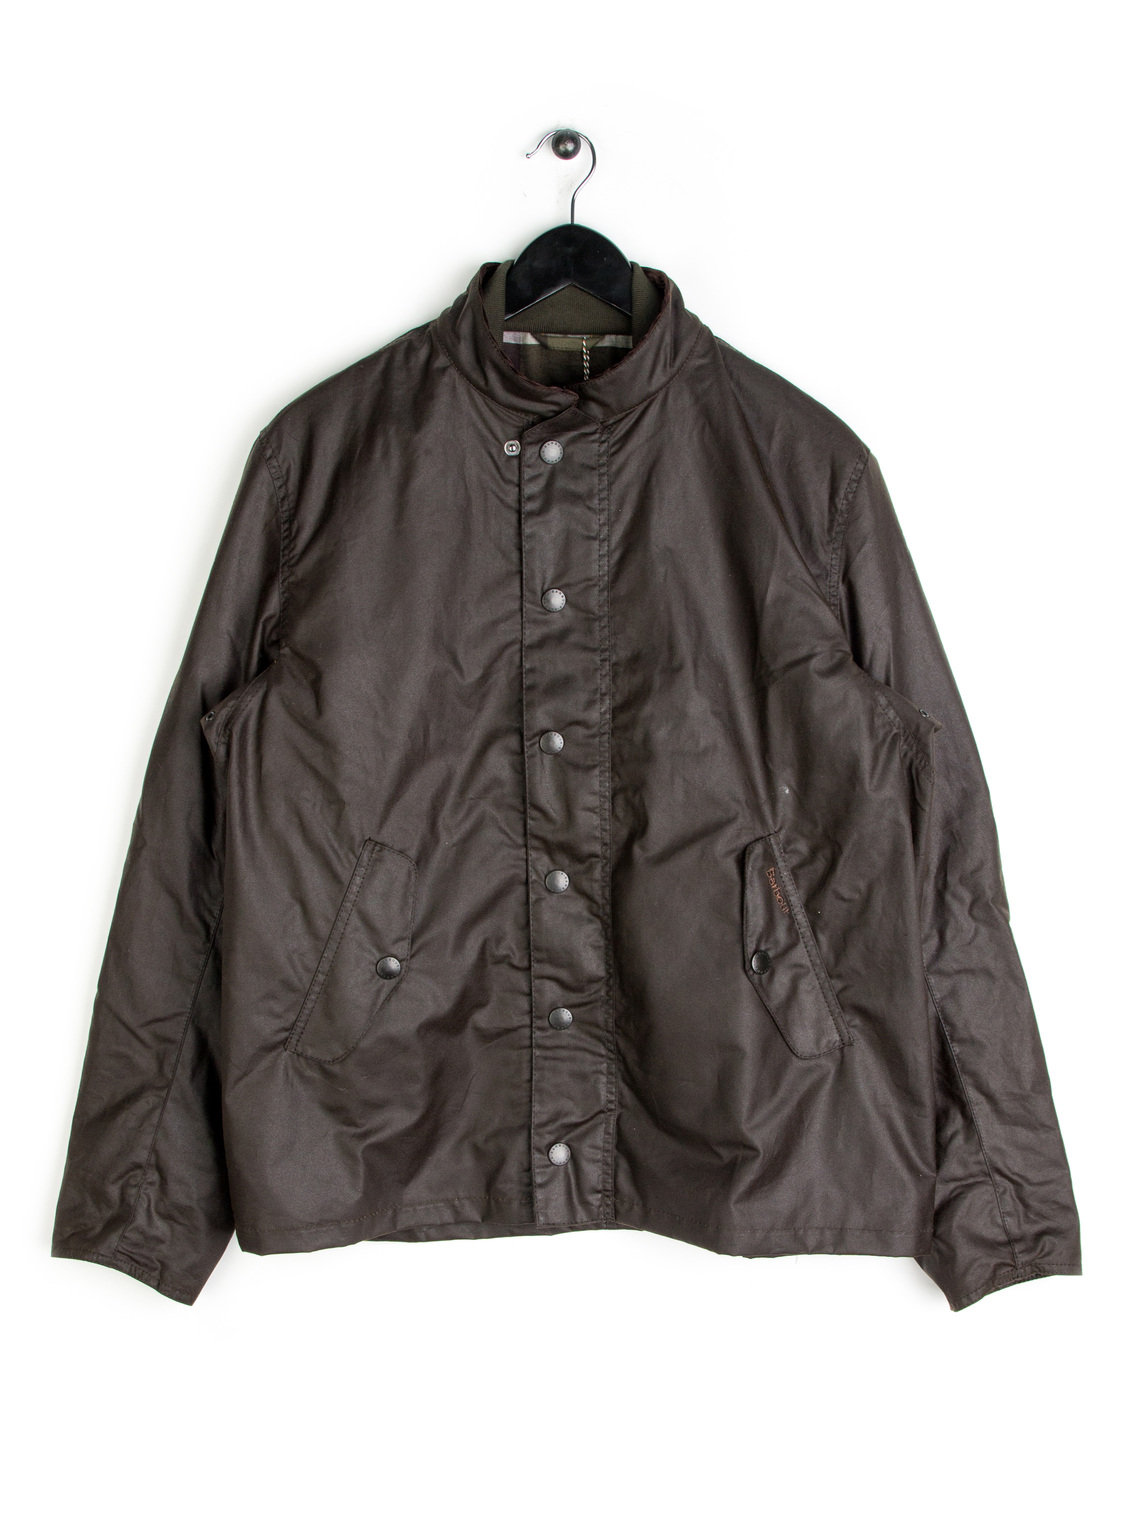 76278f053 Xile Picks: Best of Summer Jackets | Xile Clothing